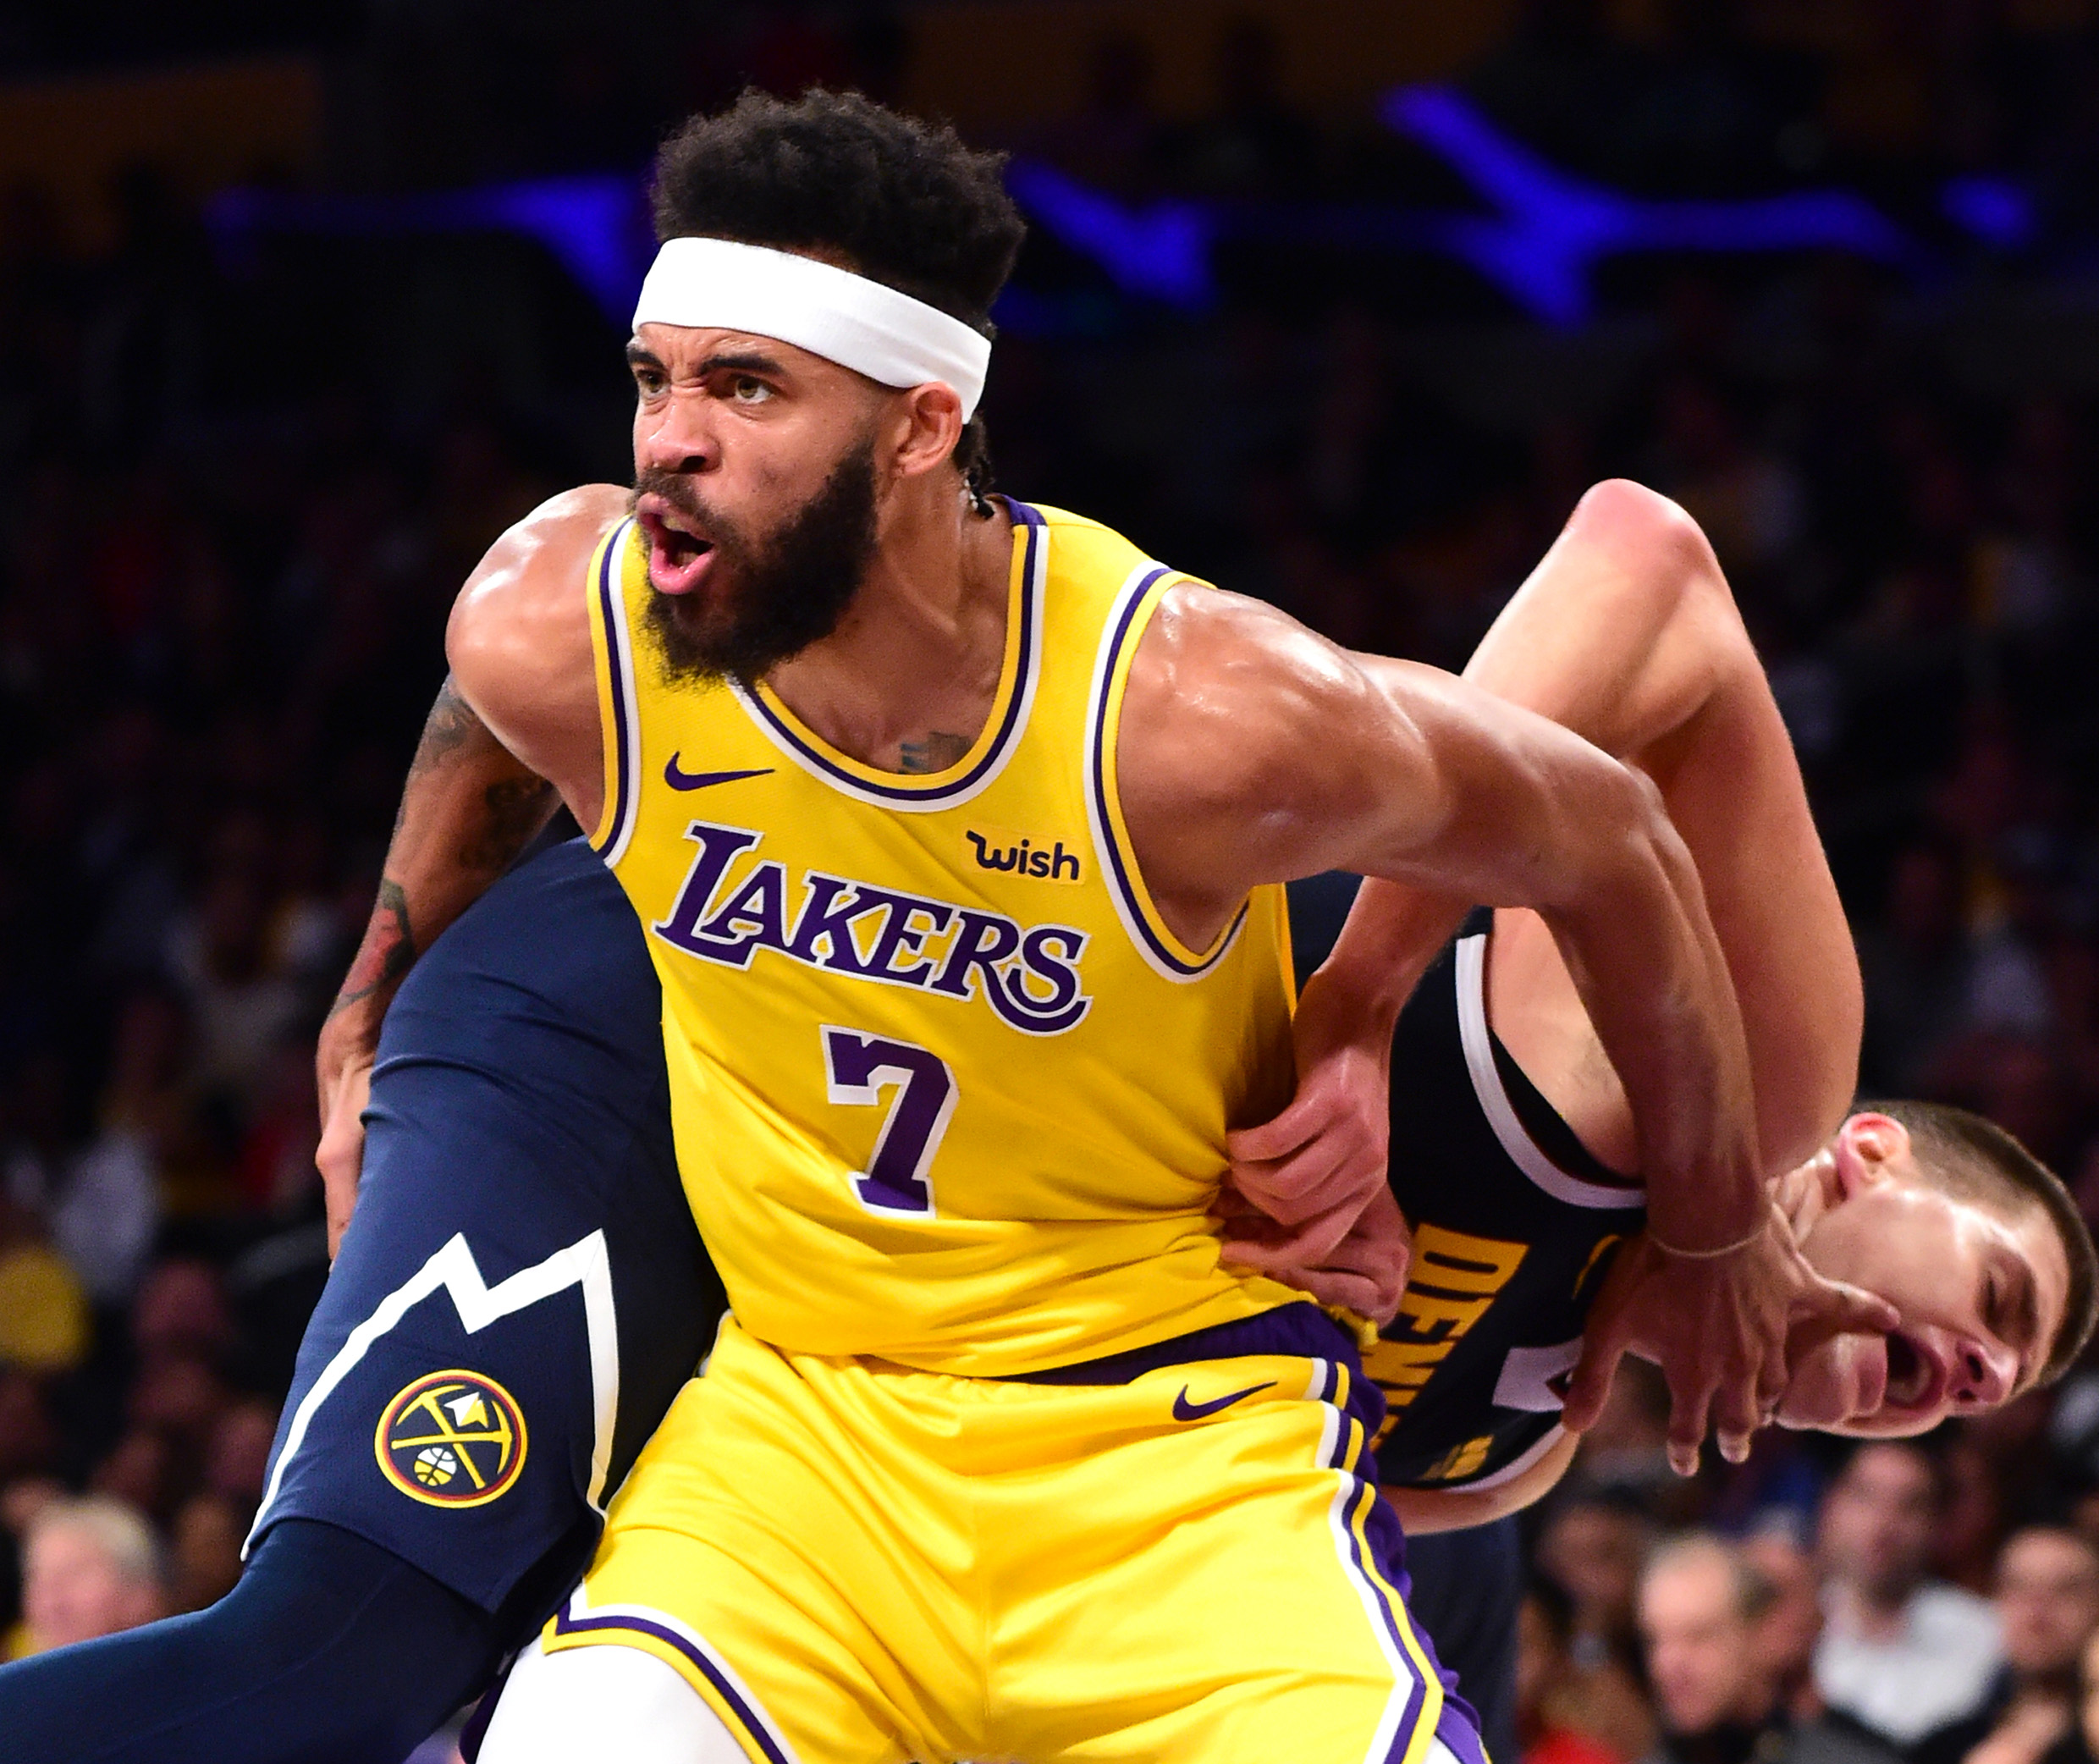 Lakers Week 10 Predictions Video: Preview: Lakers Host Undefeated Denver Nuggets